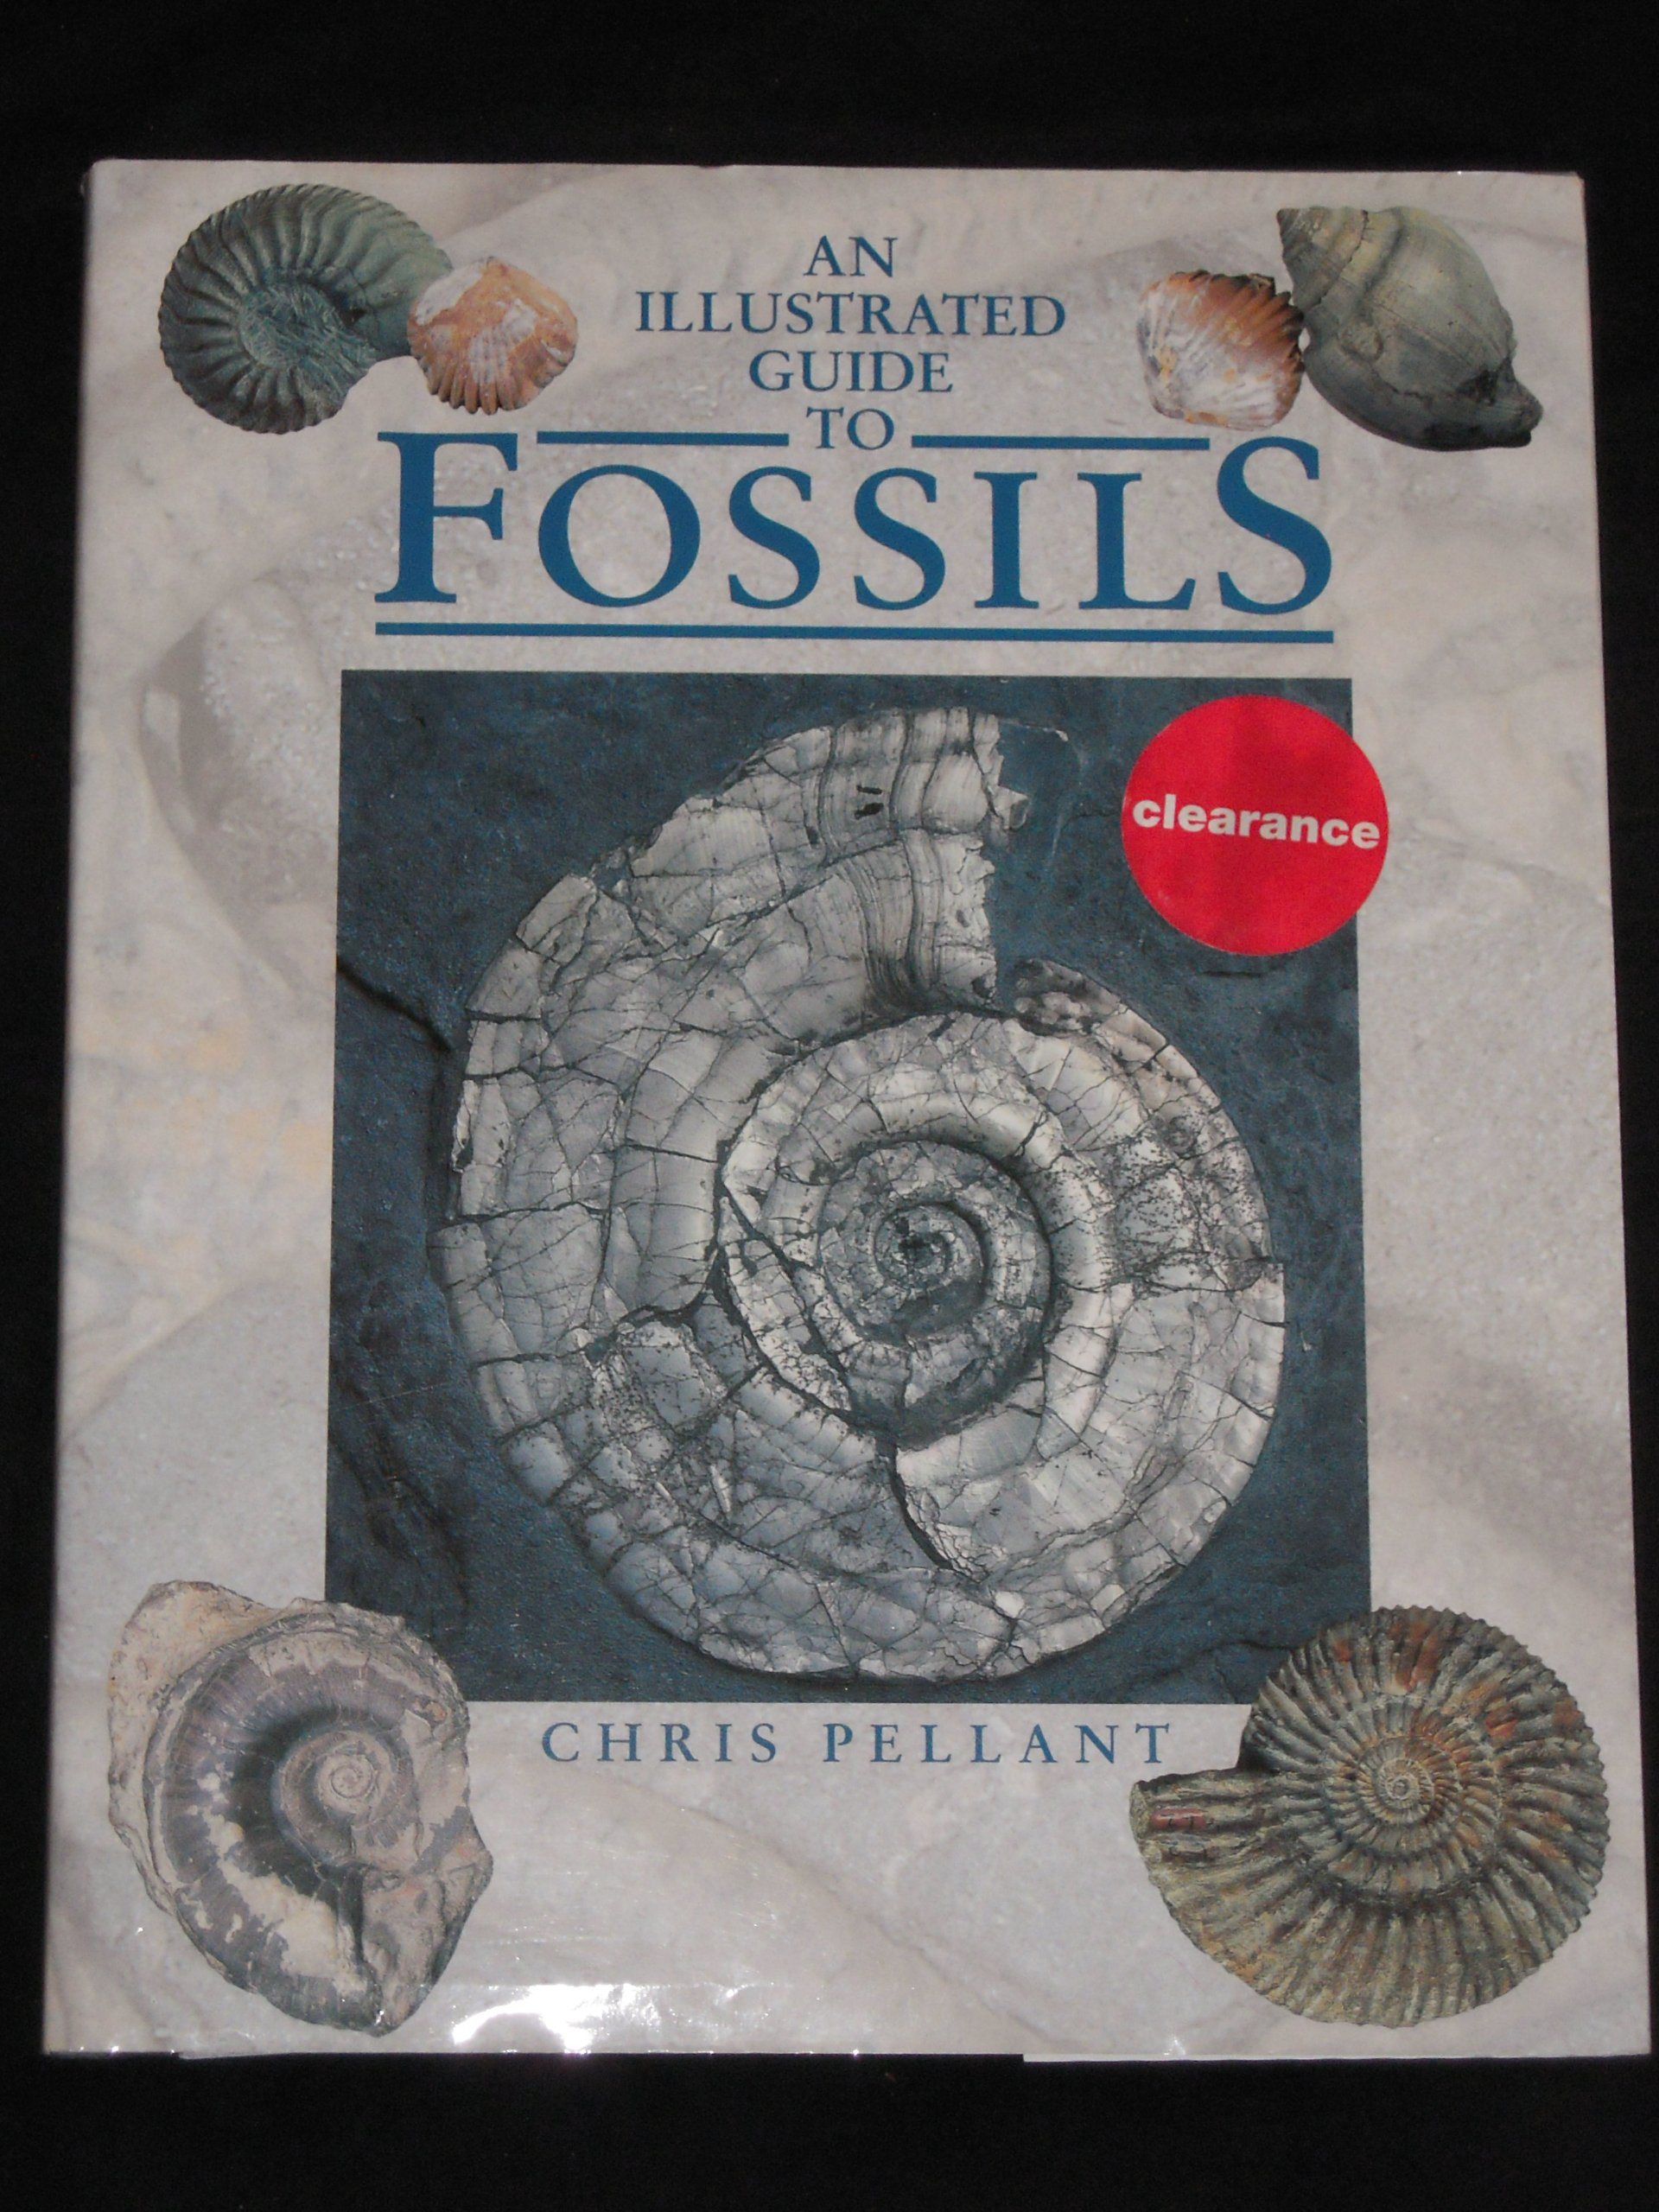 An Illustrated Guide To Fossils Chris Pellant 9781850284055 Amazon Books